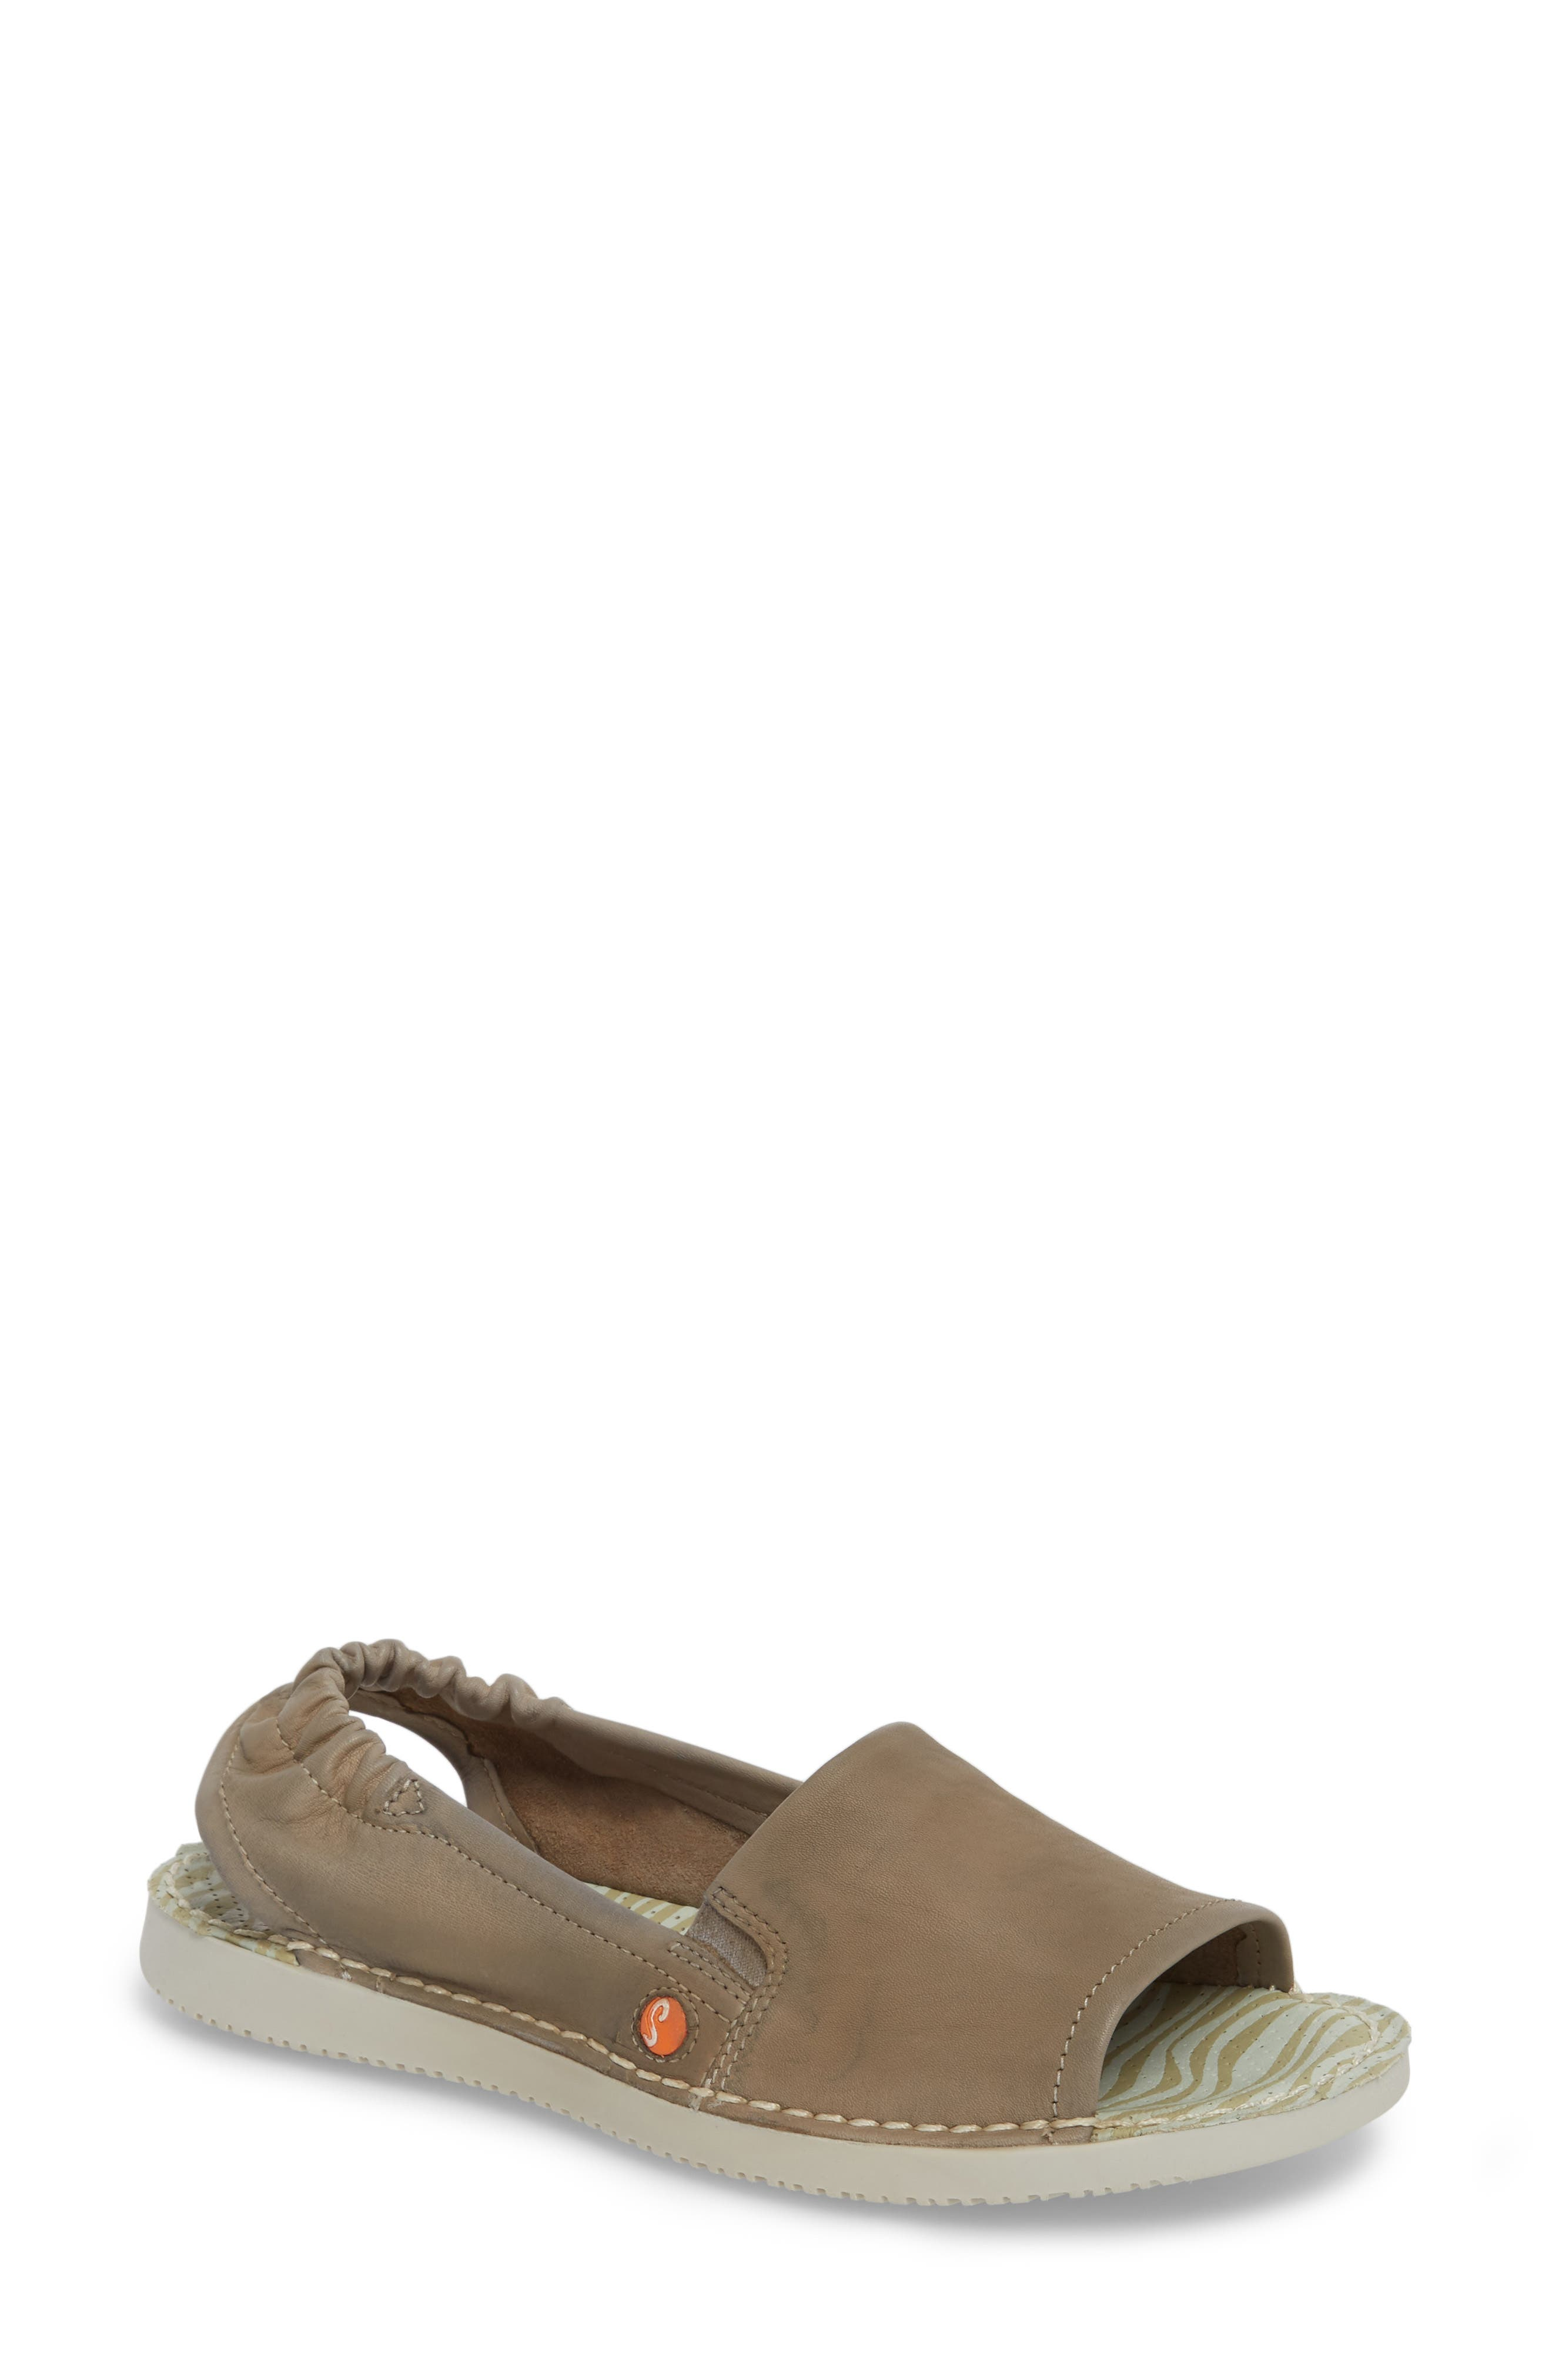 Tee Flat Sandal,                         Main,                         color, Taupe Leather